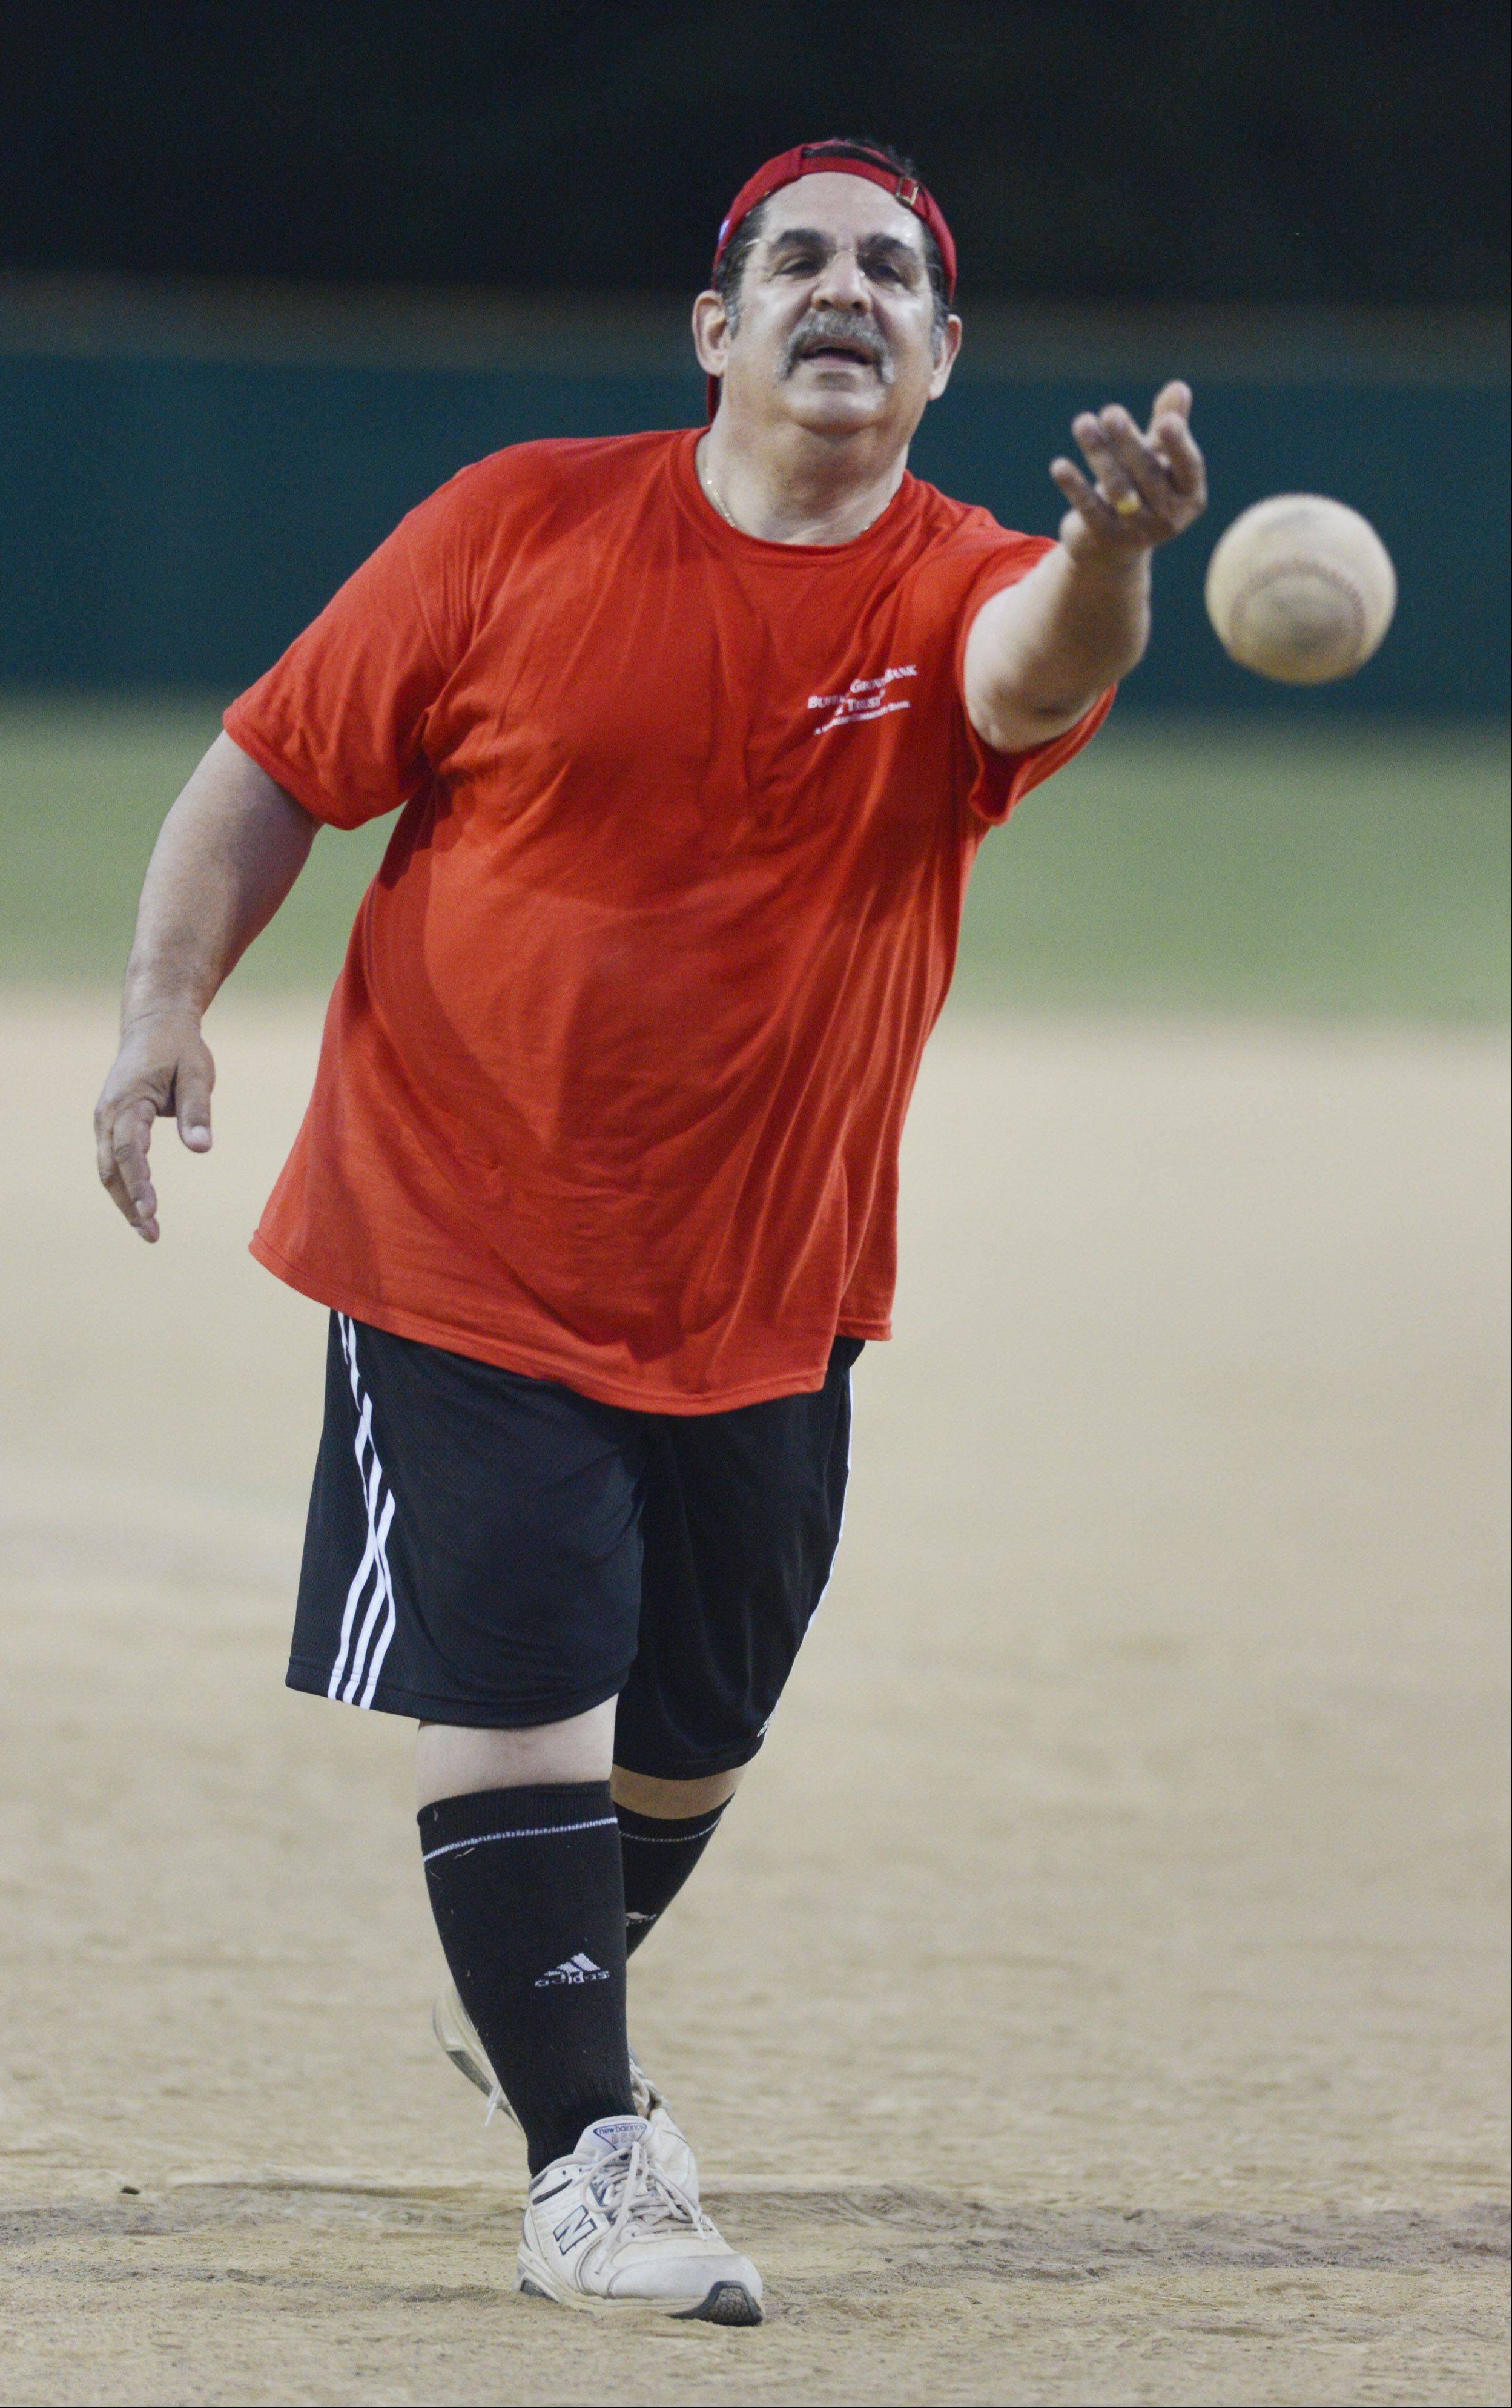 JOE LEWNARD/jlewnard@dailyherald.comScott Fishkin of the Buffalo Grove Chamber of Commerce delivers a pitch during Wednesday's annual charity softball game at Emmerich Park in Buffalo Grove.